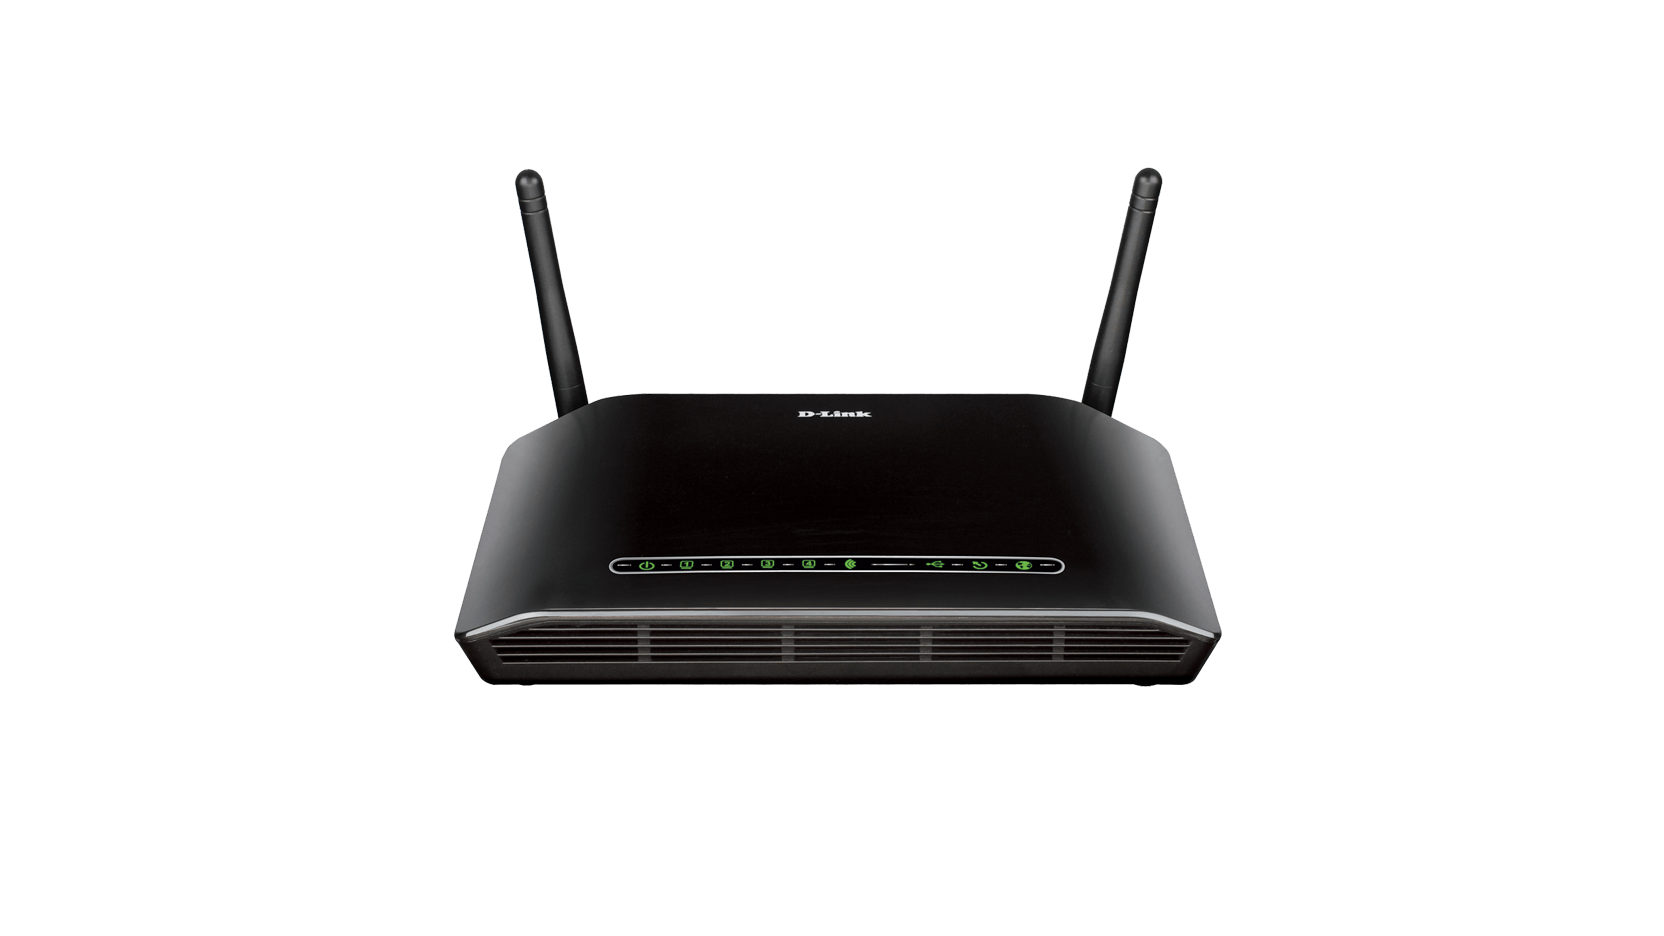 DSL-2750B Wireless N ADSL2+ Modem Router (Annex A) | D-Link Deutschland